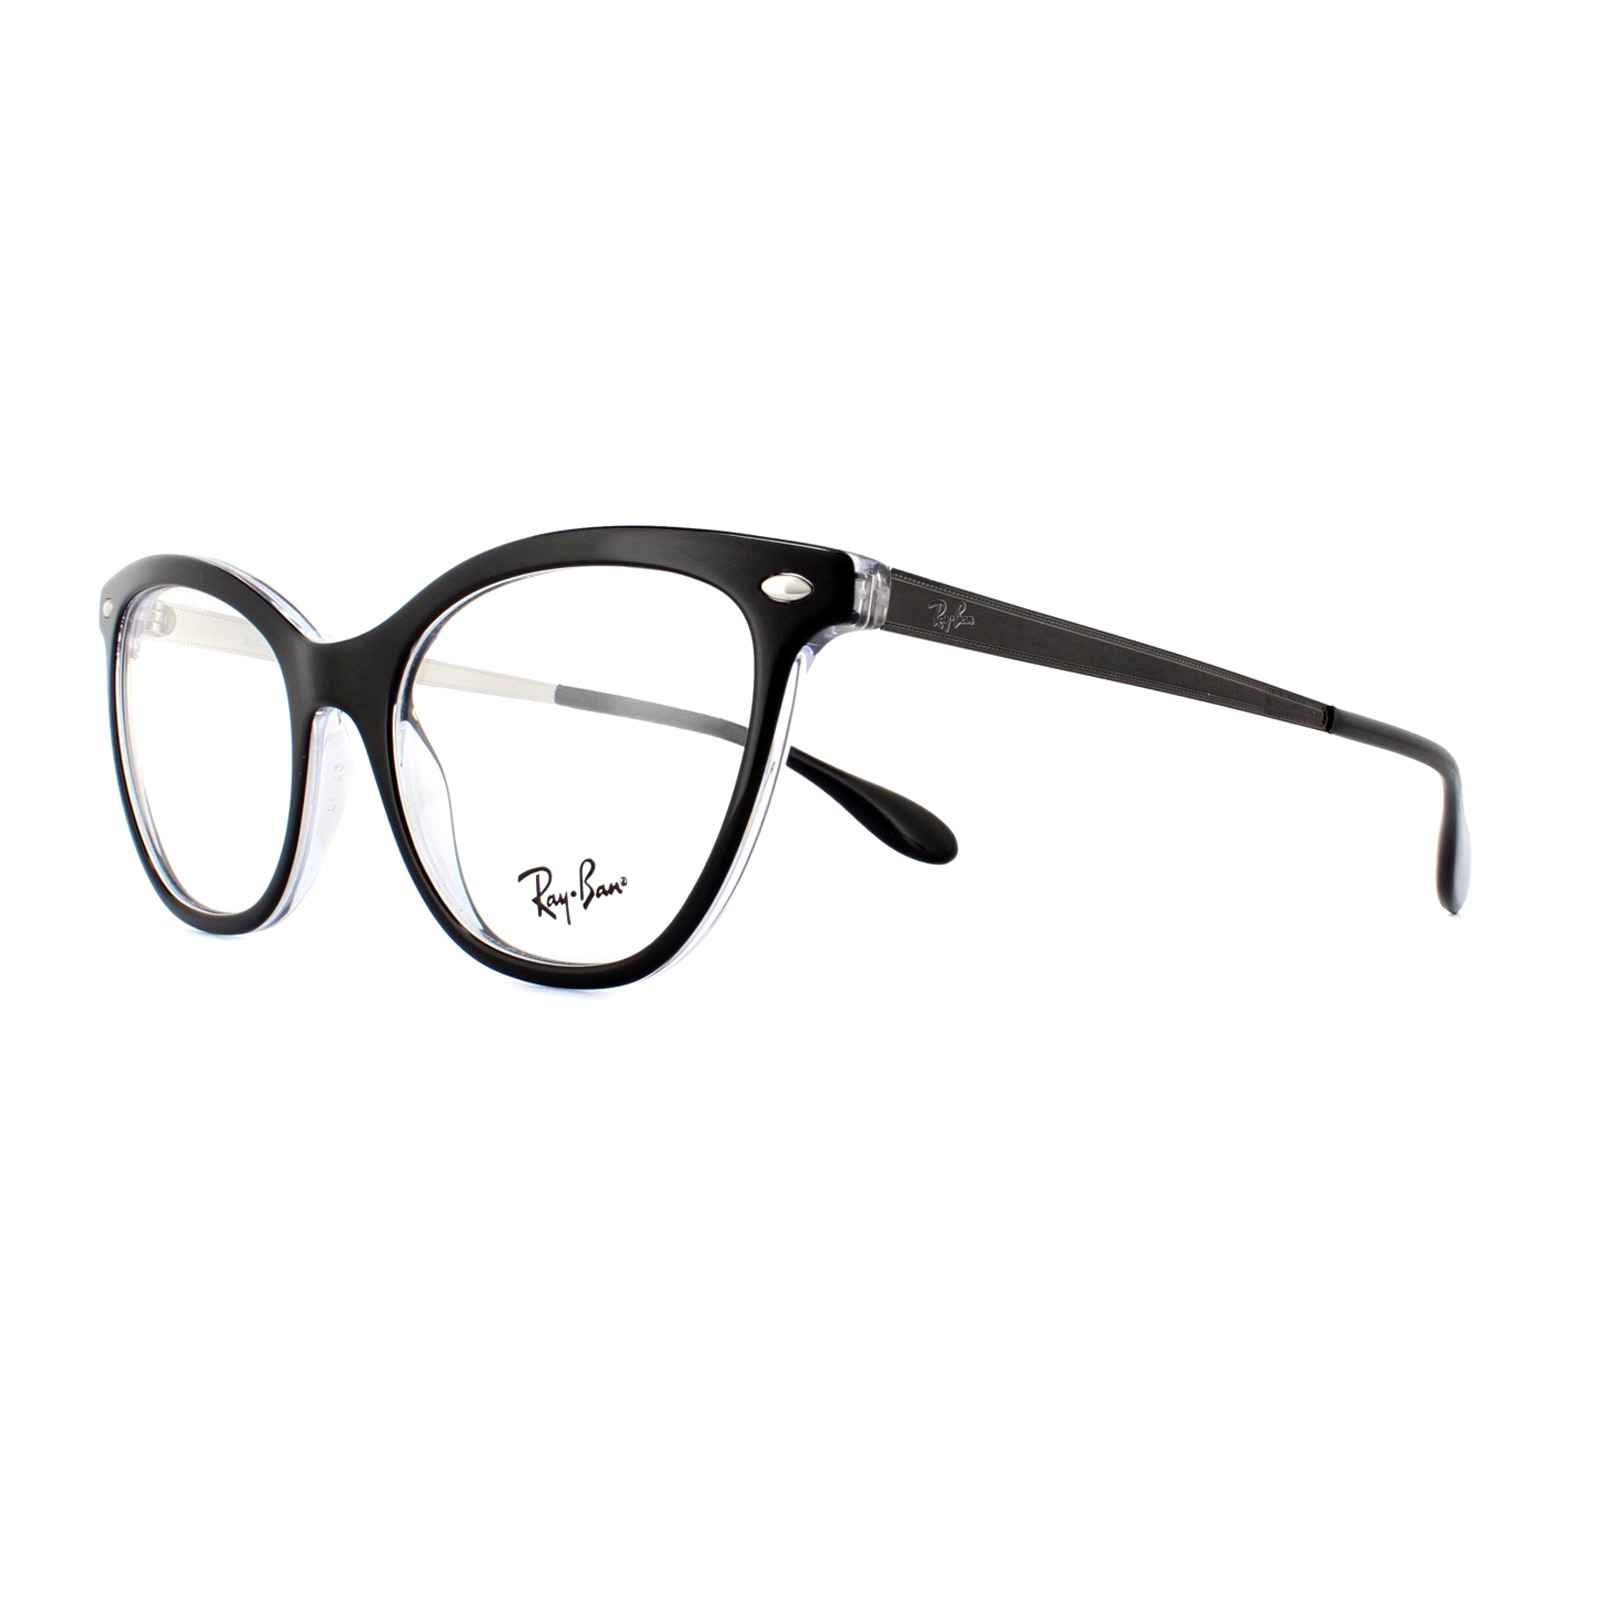 bf9acedb1f795 Sentinel Ray-Ban Glasses Frames 5360 2034 Top Black On Transparrent 52mm